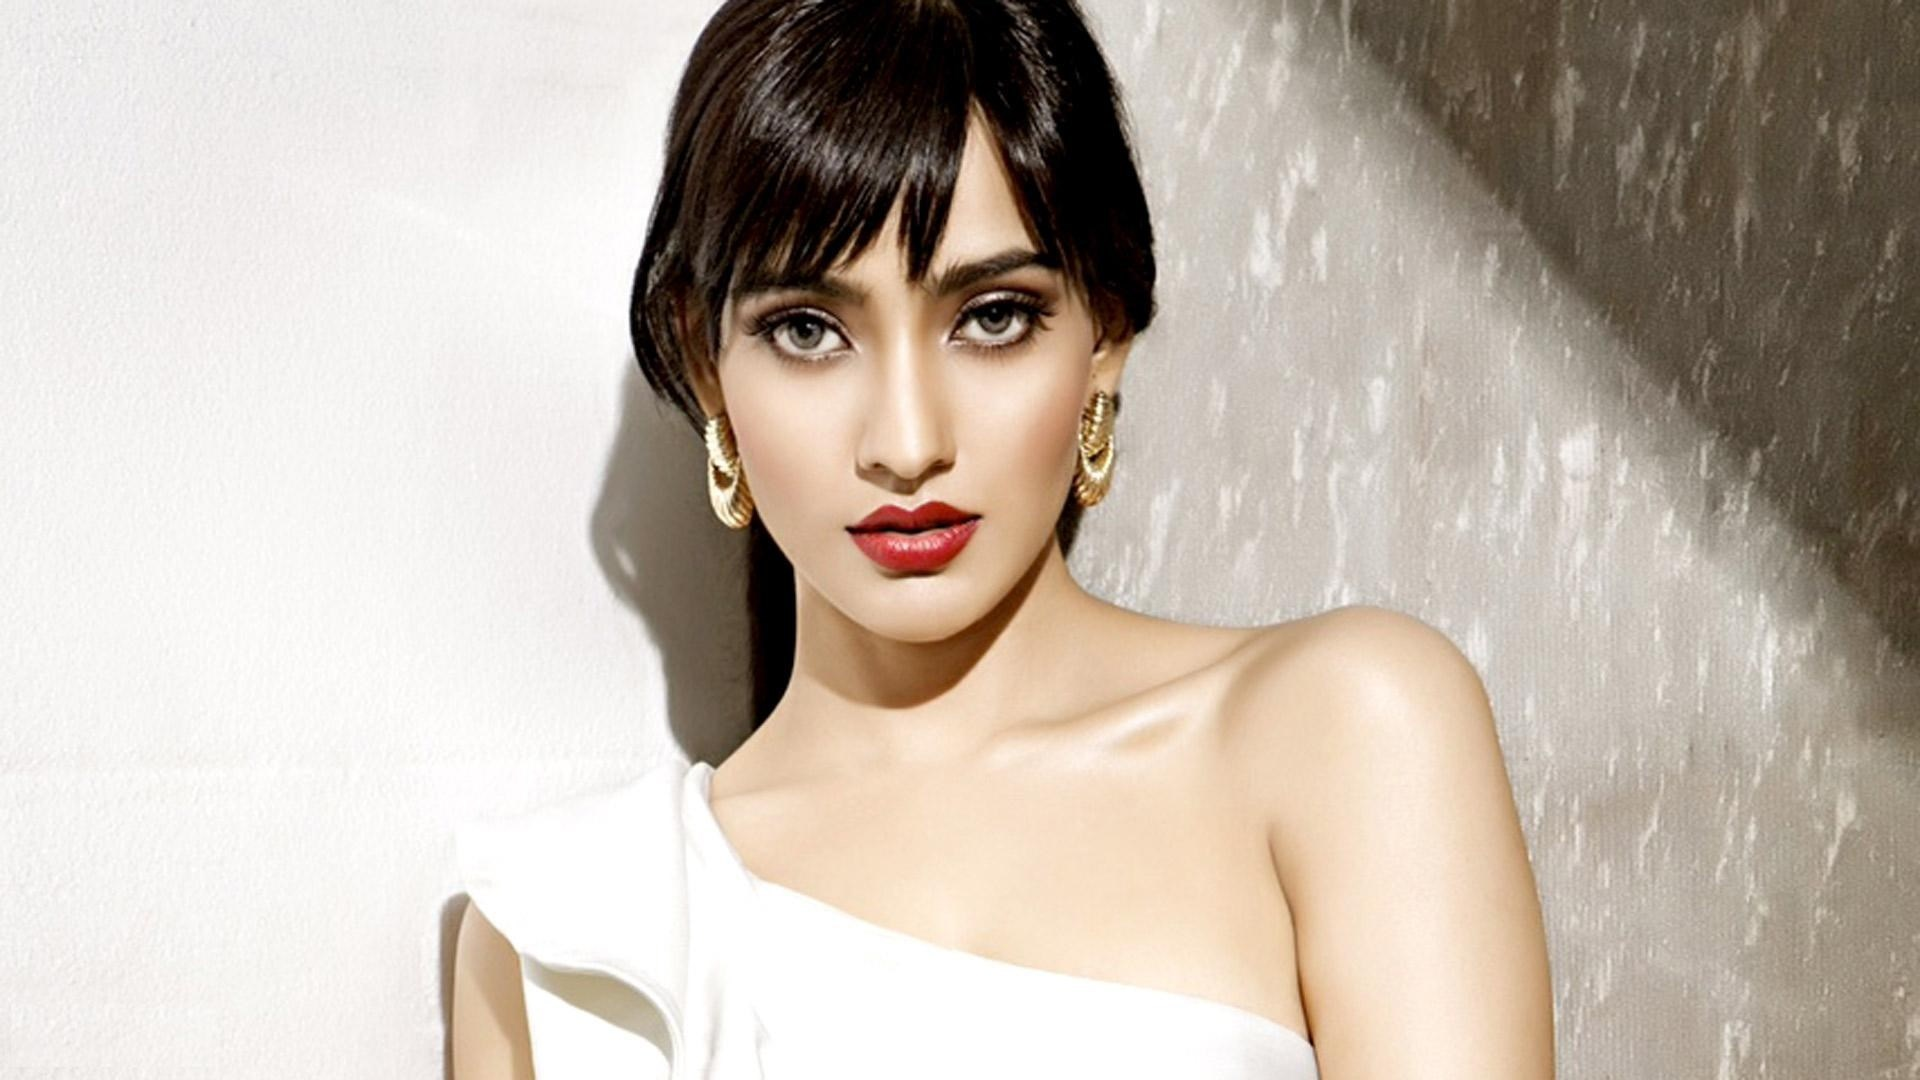 Namrata shirodkar wallpapers high resolution and quality download - Indian beautiful models hd wallpapers ...